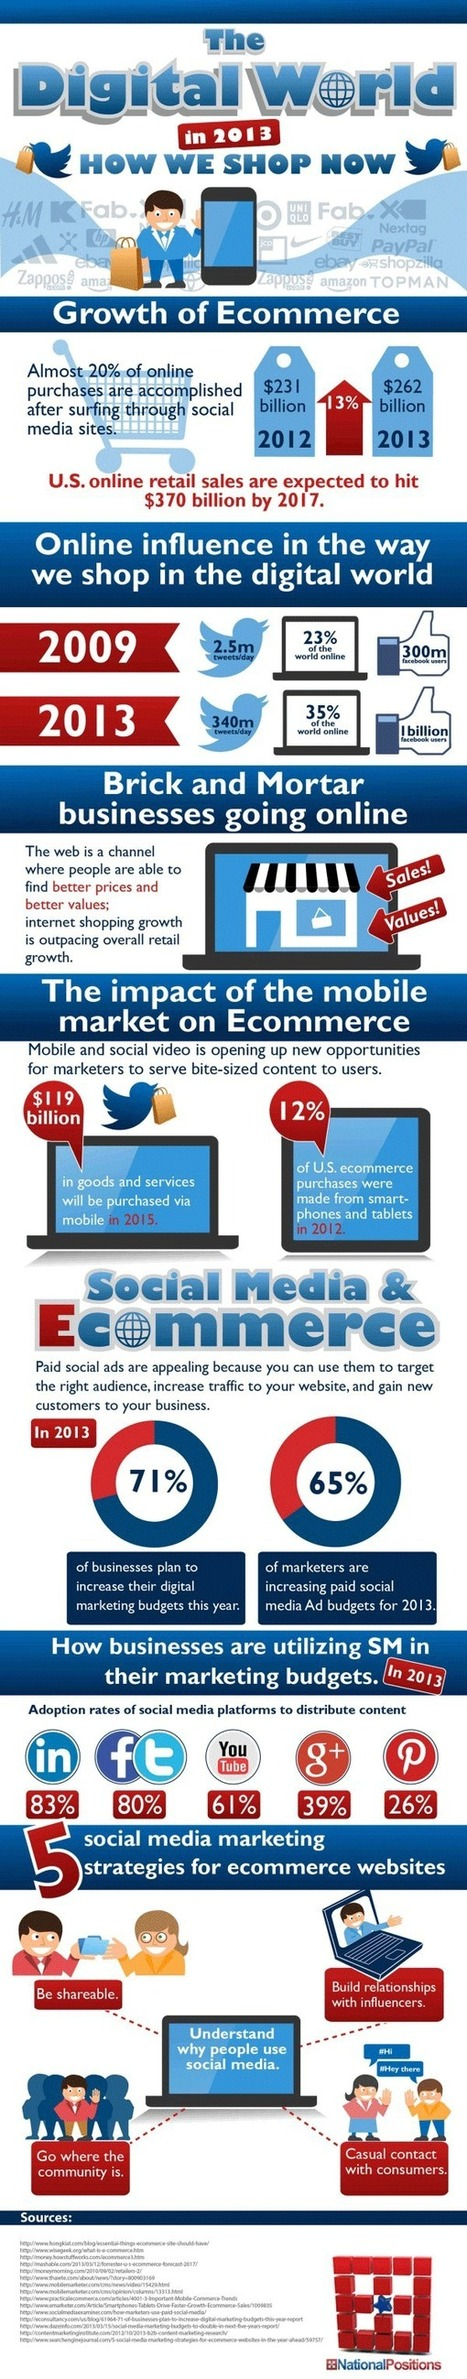 Linking ecommerce and social media in 2013 | Social Media Tips & News | Scoop.it